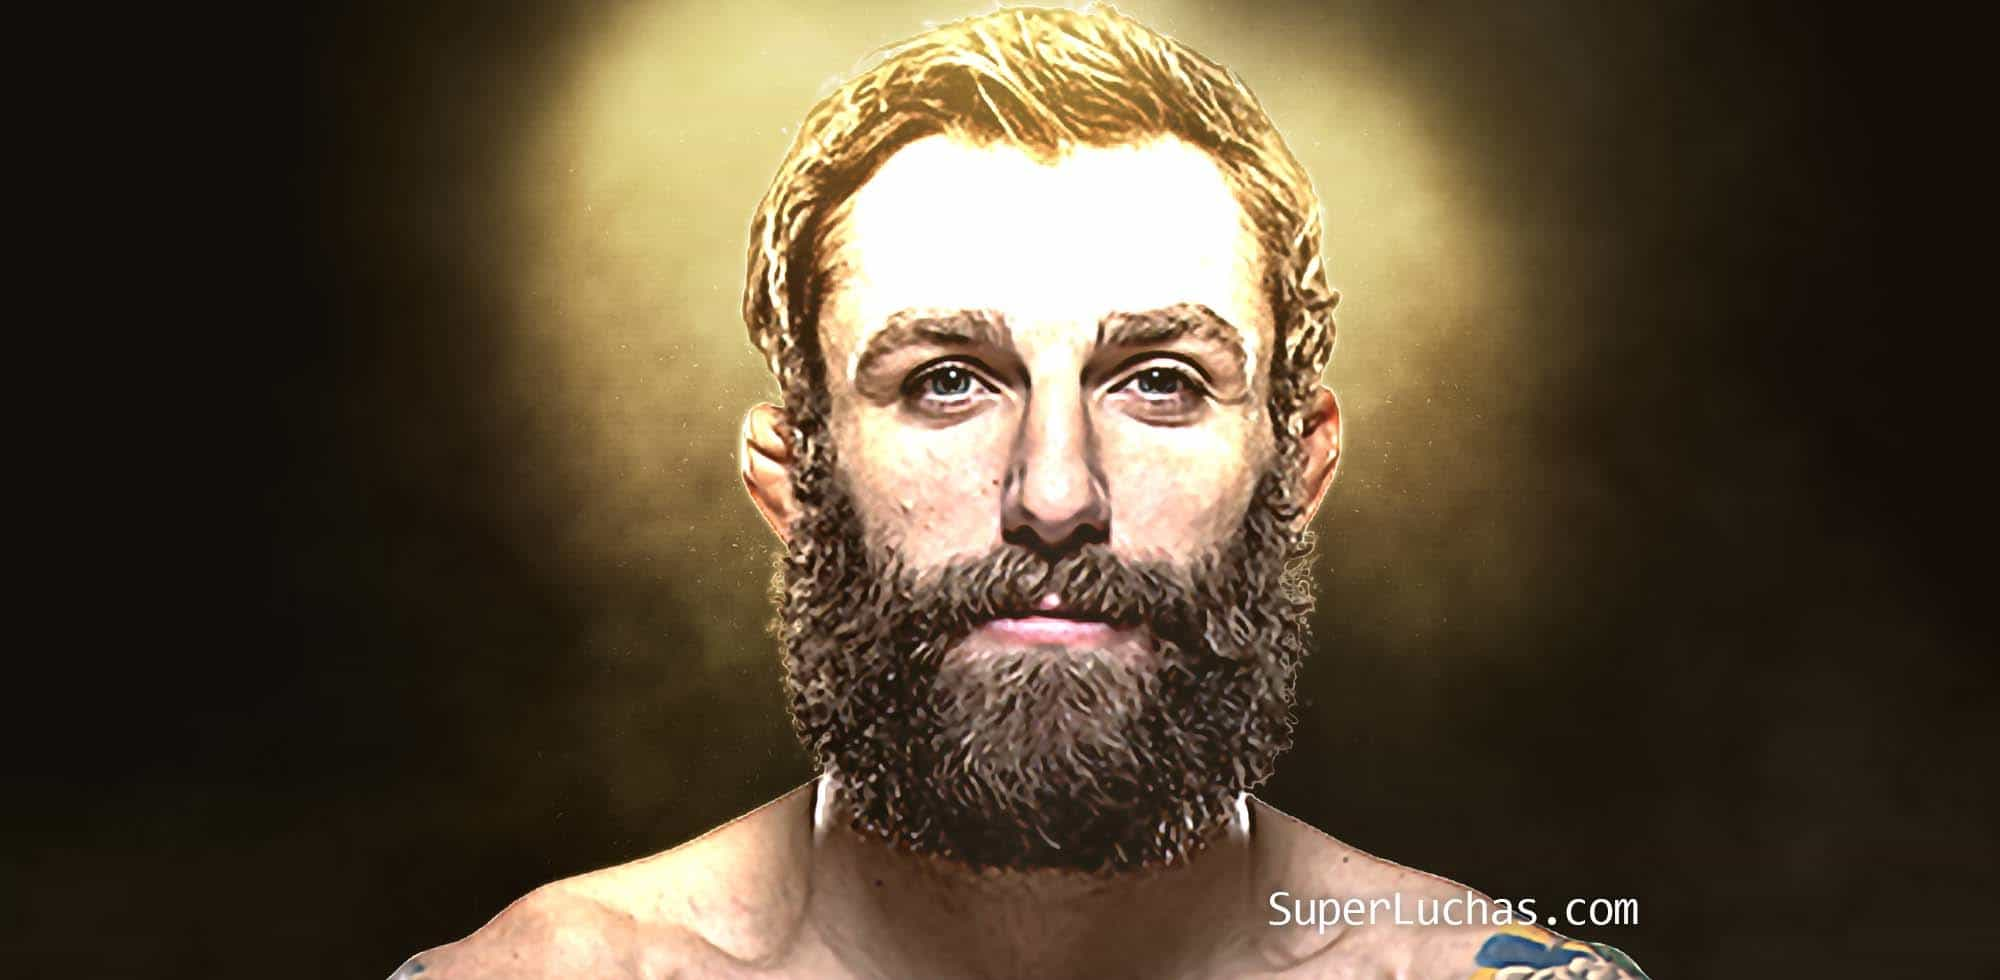 Michael Chiesa en proceso de tomar acción legal contra Conor McGregor 6